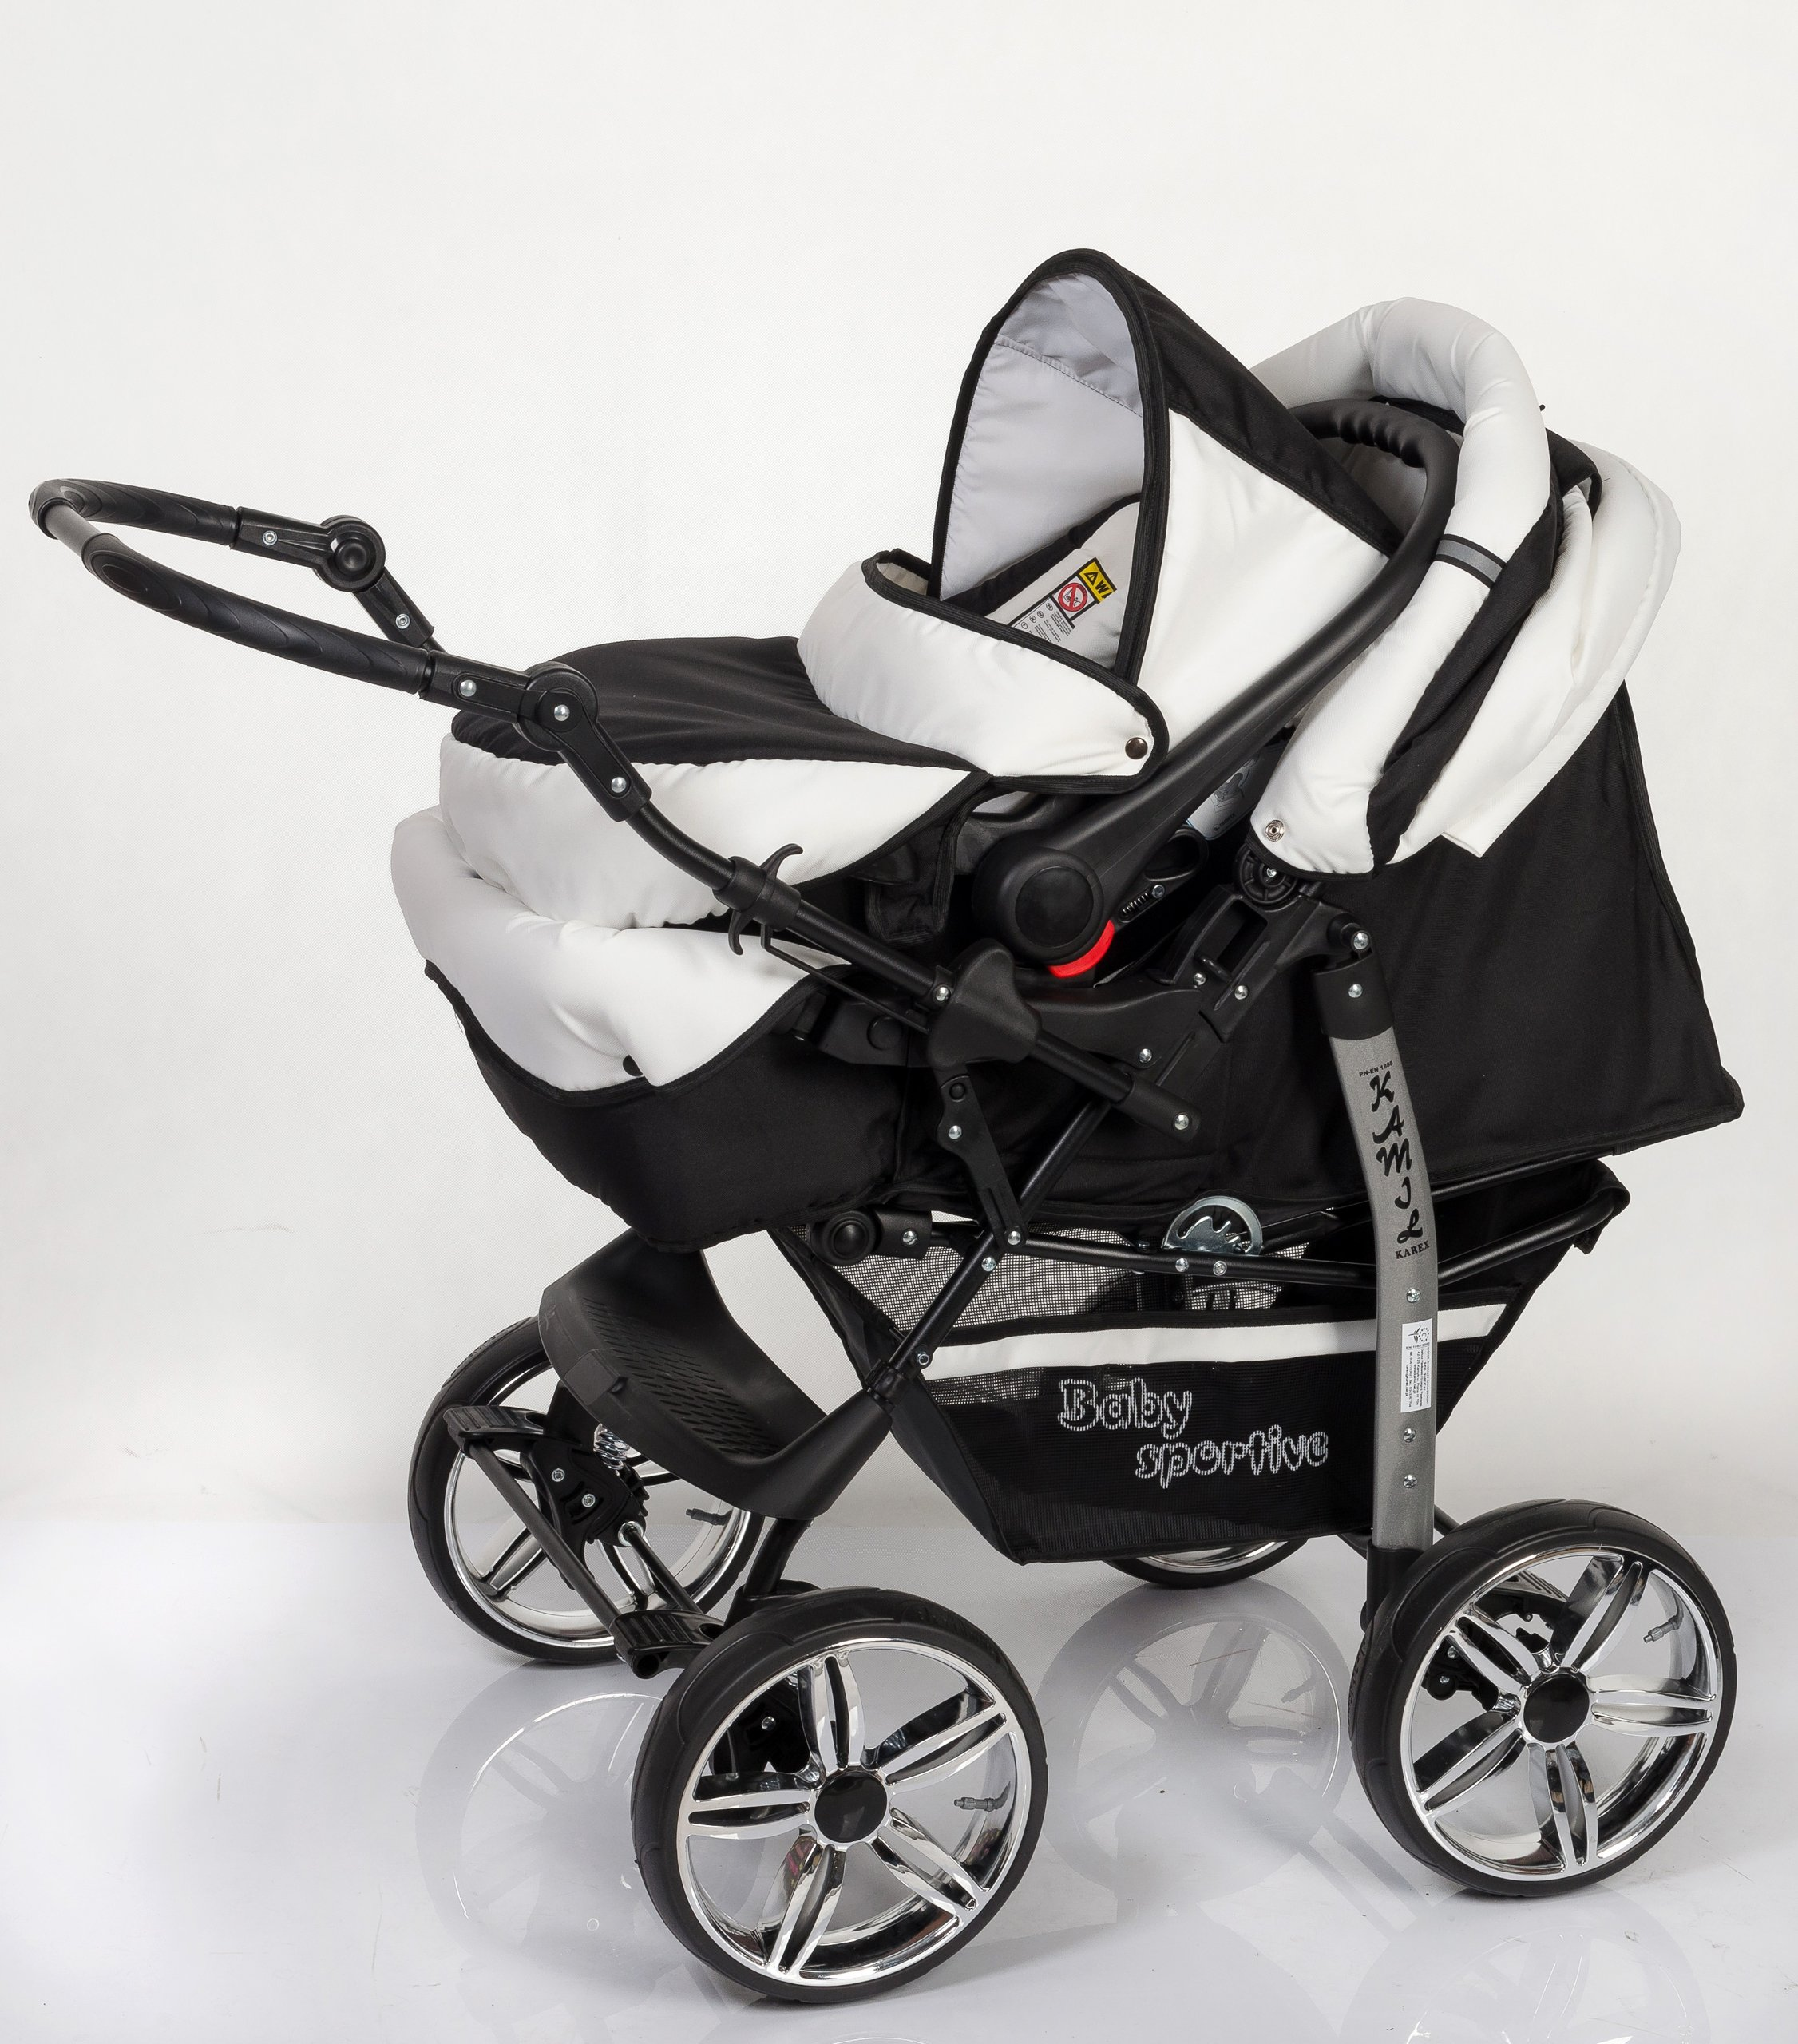 3-in-1 Travel System with Baby Pram, Car Seat, Pushchair & Accessories, Black & White   6